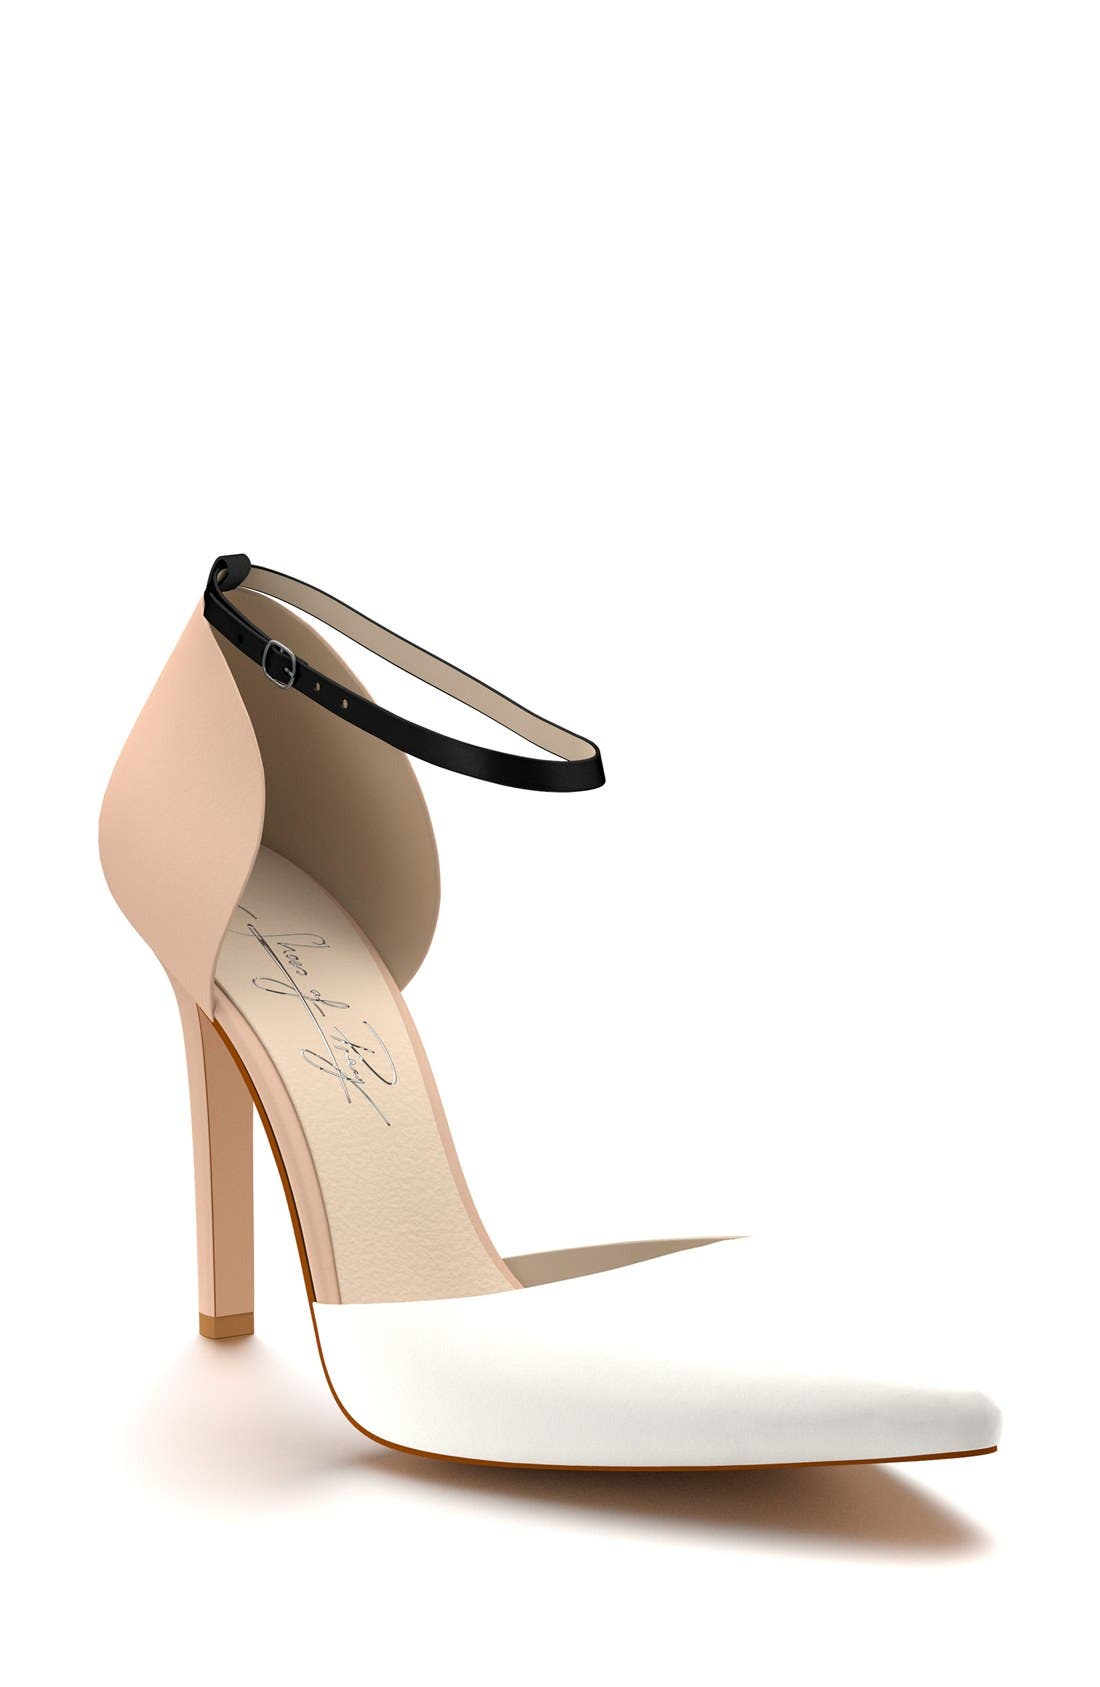 SHOES OF PREY d'Orsay Ankle Strap Pump